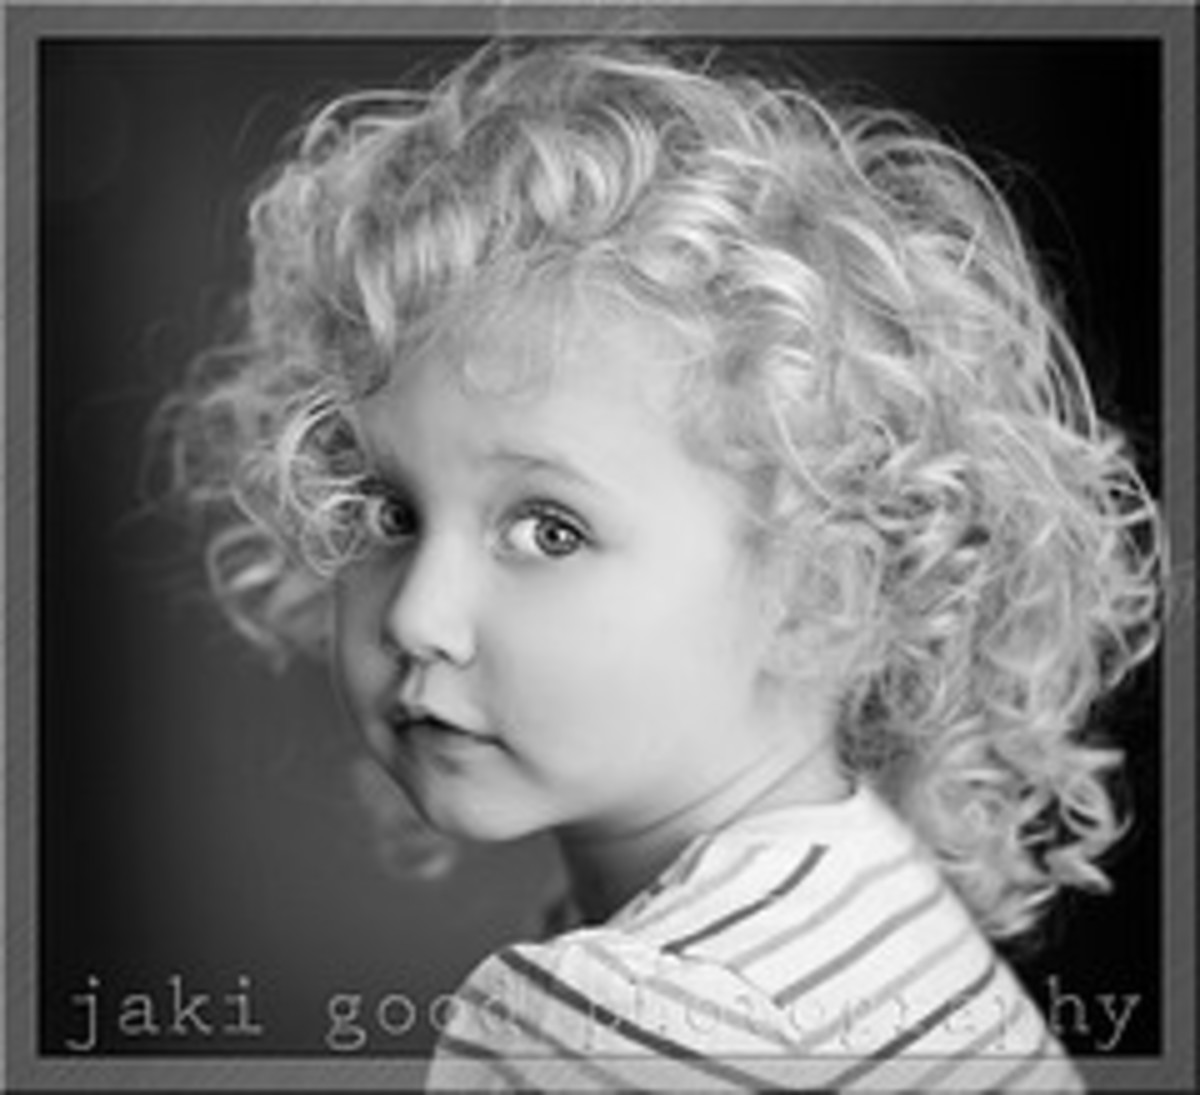 Child with Natural Blonde Hair (Photos from Flickr)